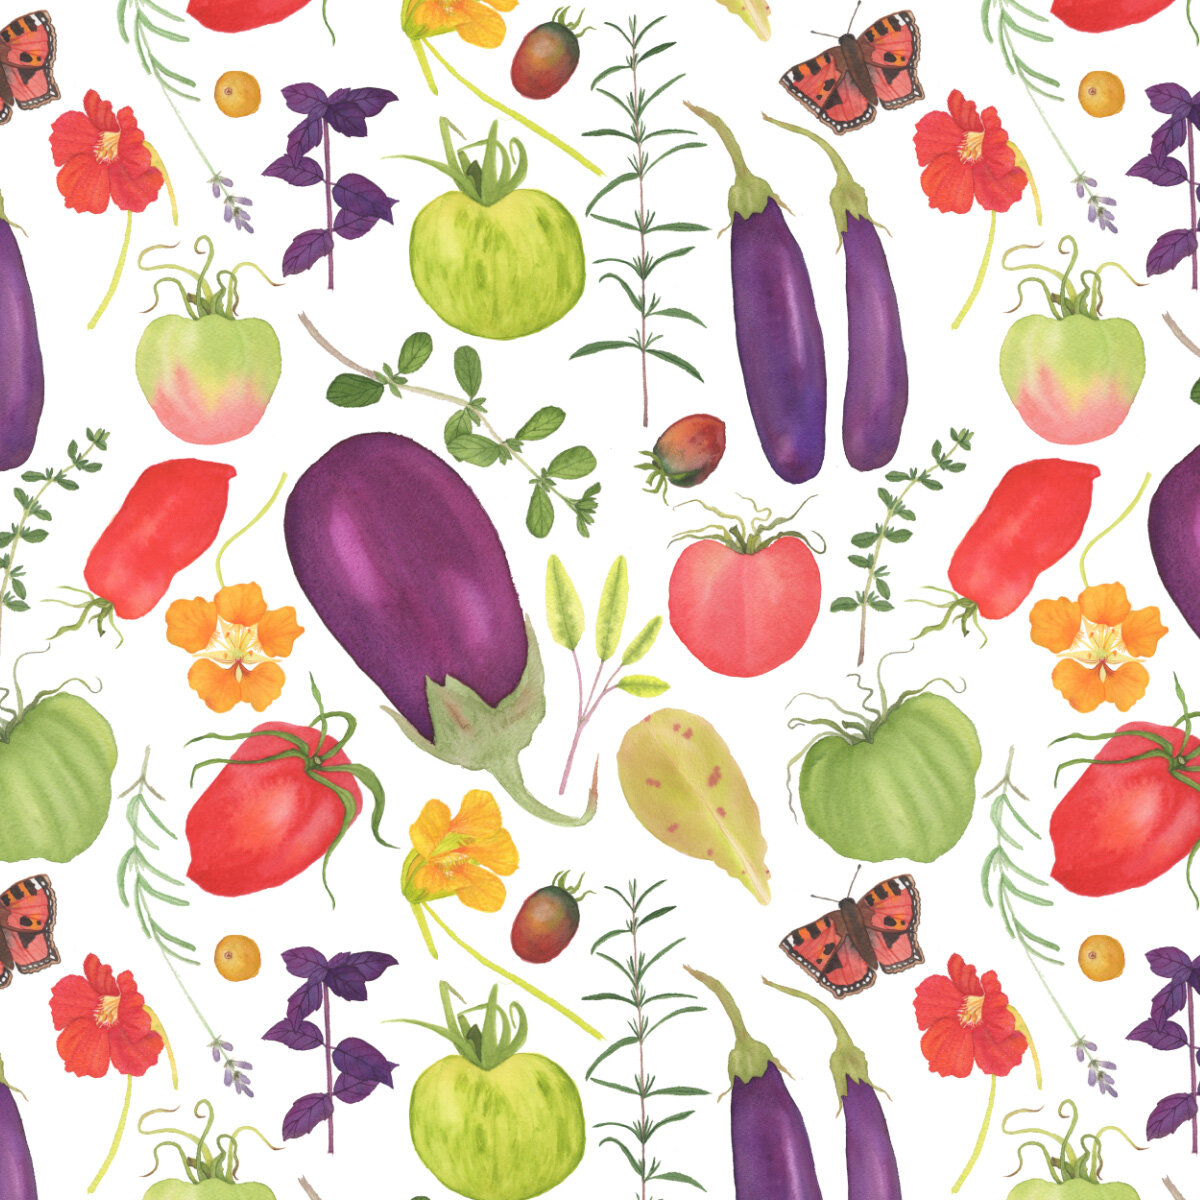 Watercolor Kitchen Garden Fabric Design by Anne Butera features tomatoes, herbs, flowers and is available on Spoonflower